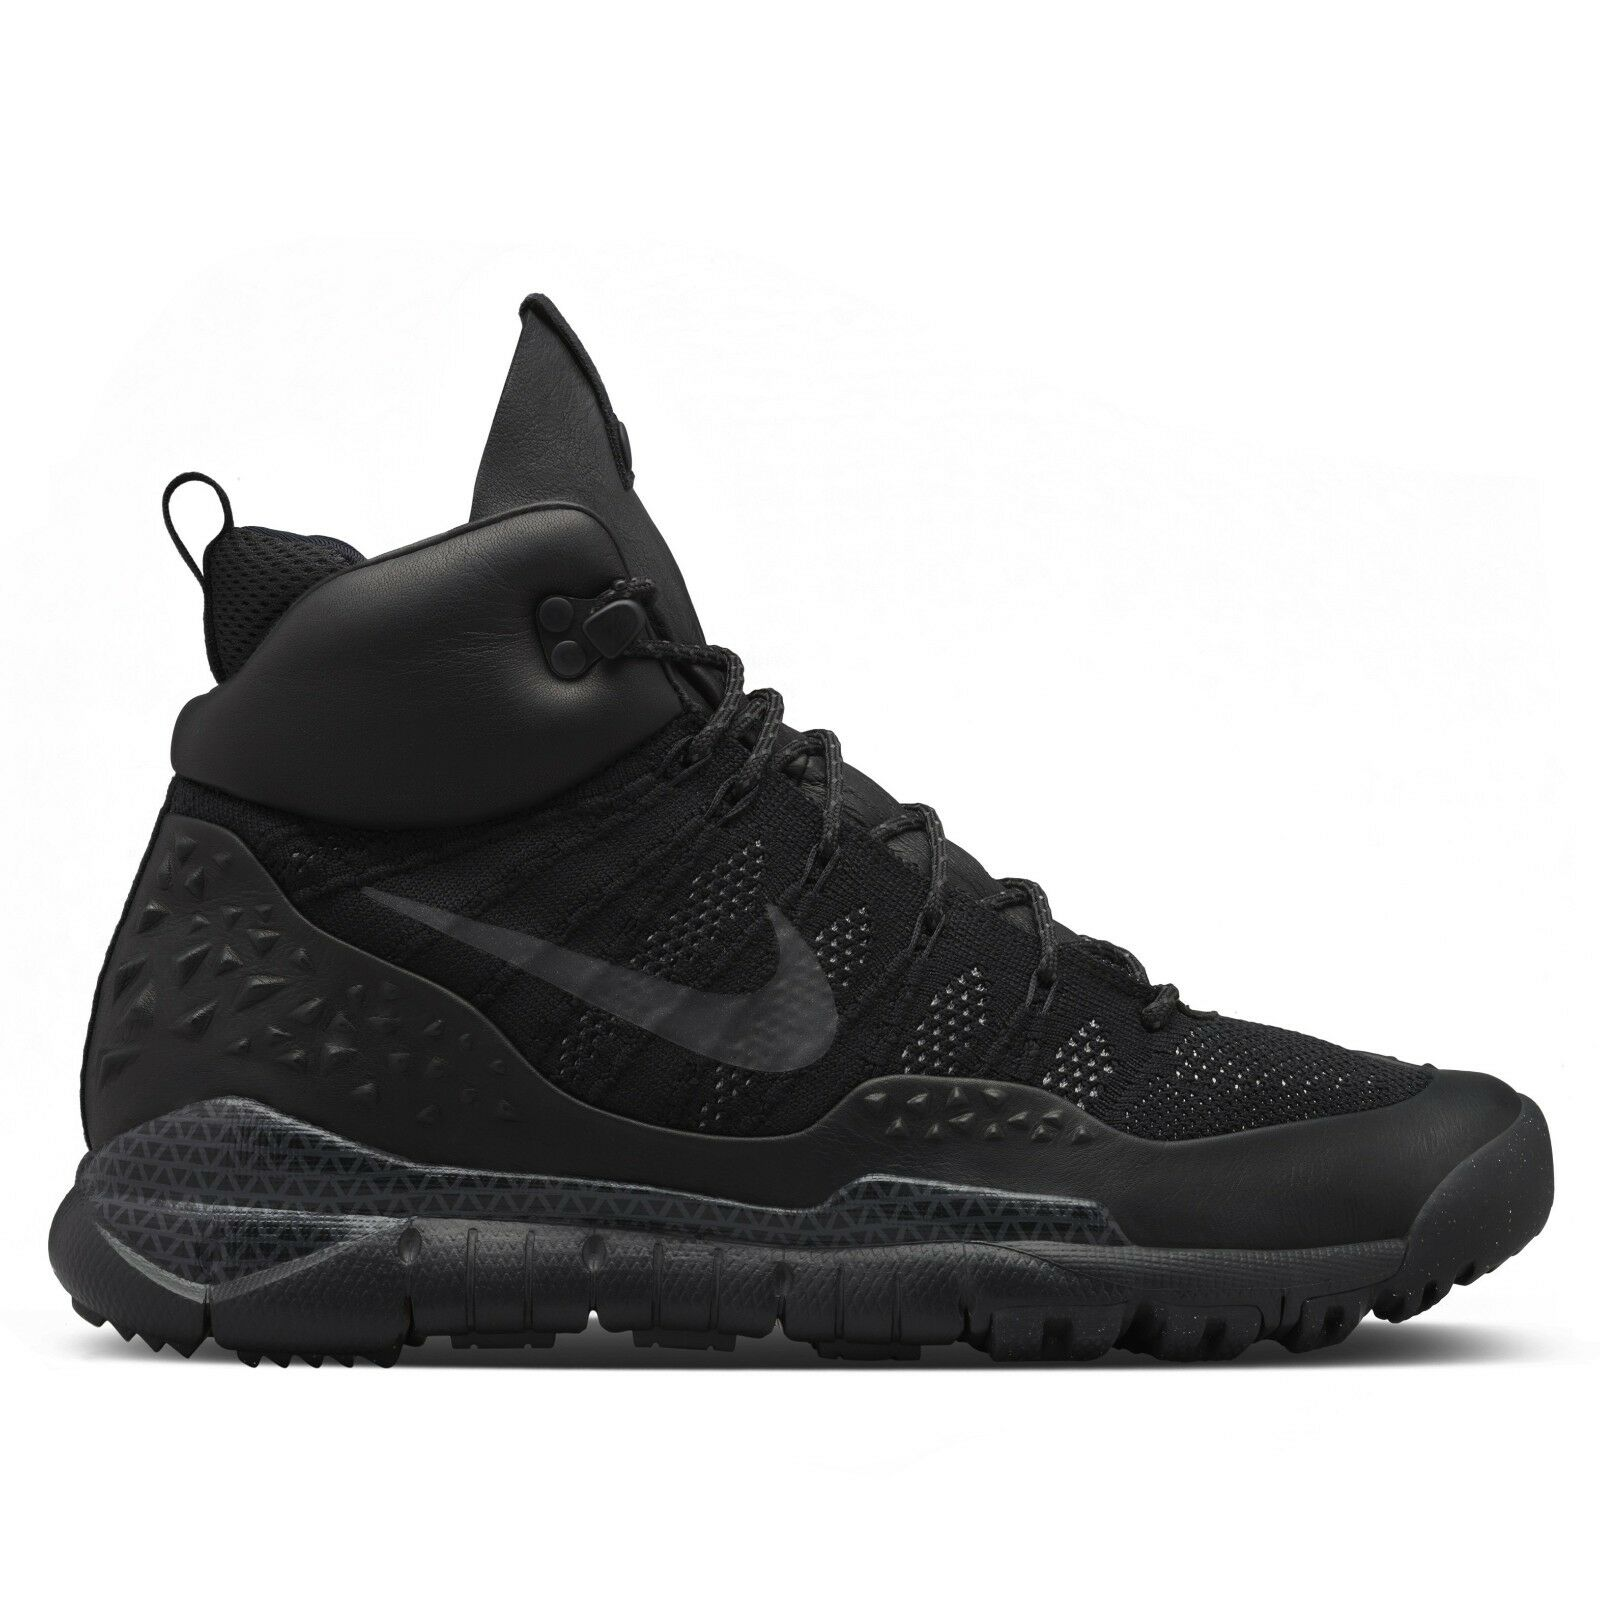 Nike Lupinek Flyknit ACG Black Anthracite Mens Shoes Boots 826077-001 NikeLab Brand discount